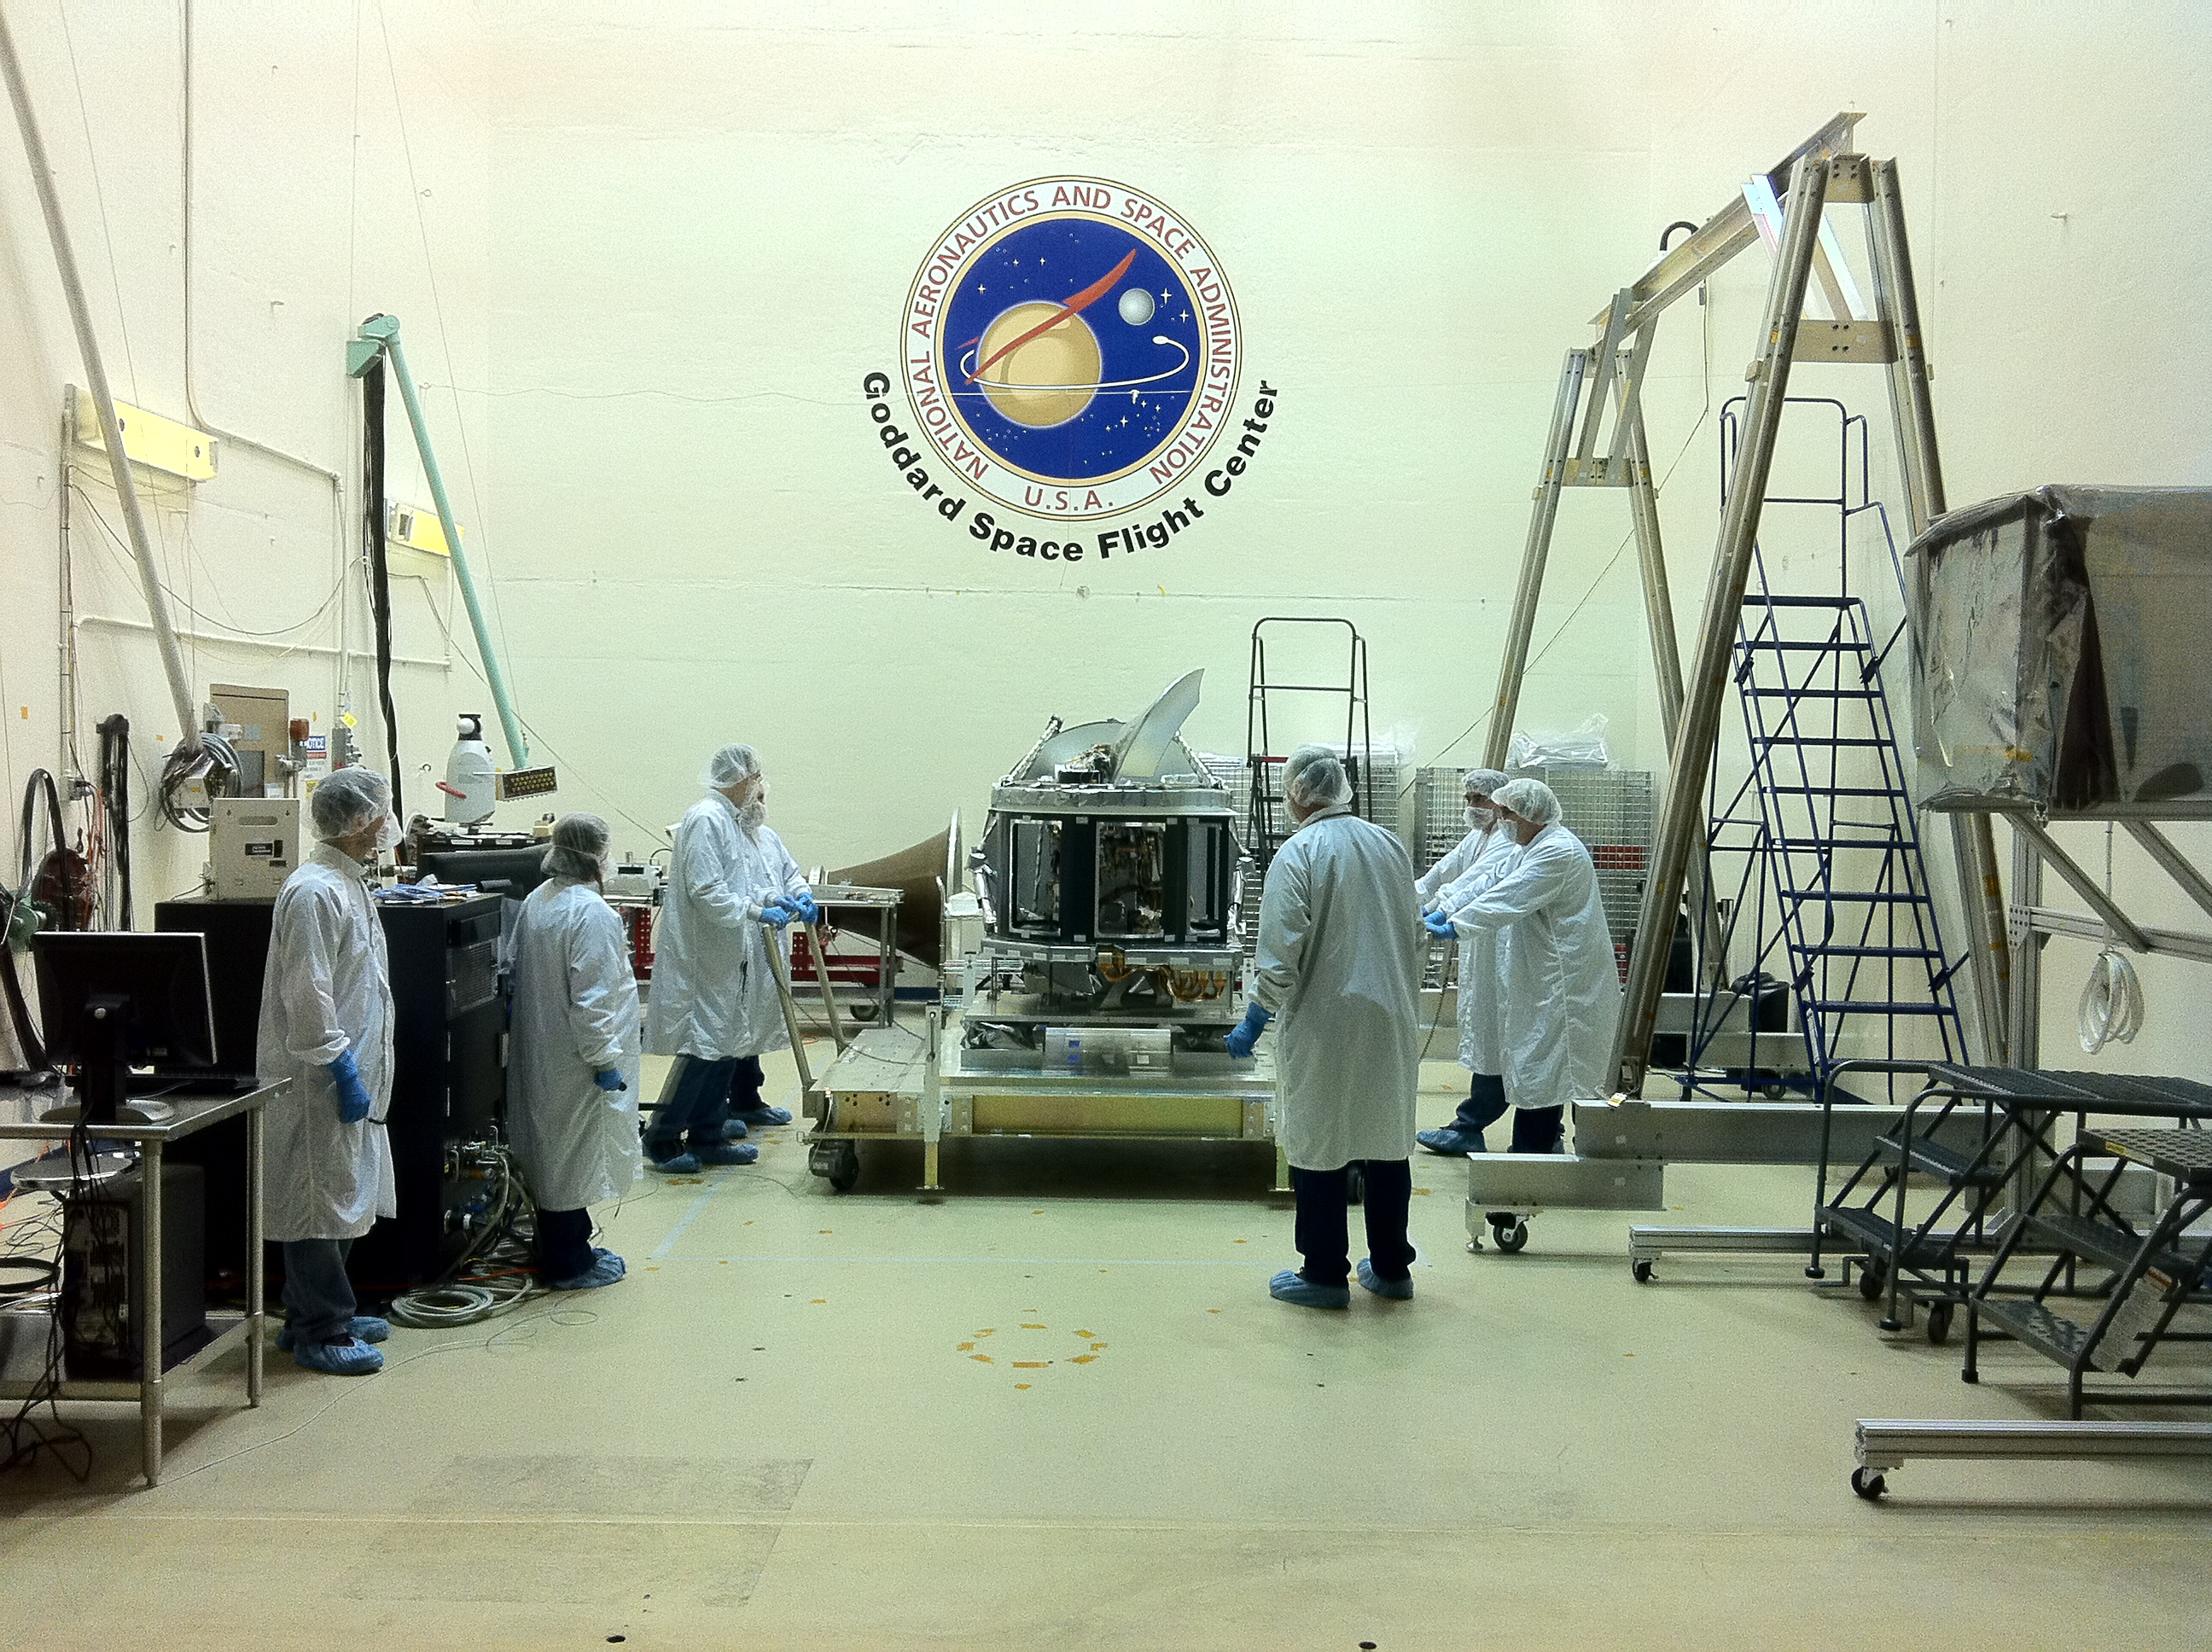 the GMI at Goddard, surrounded by engineers